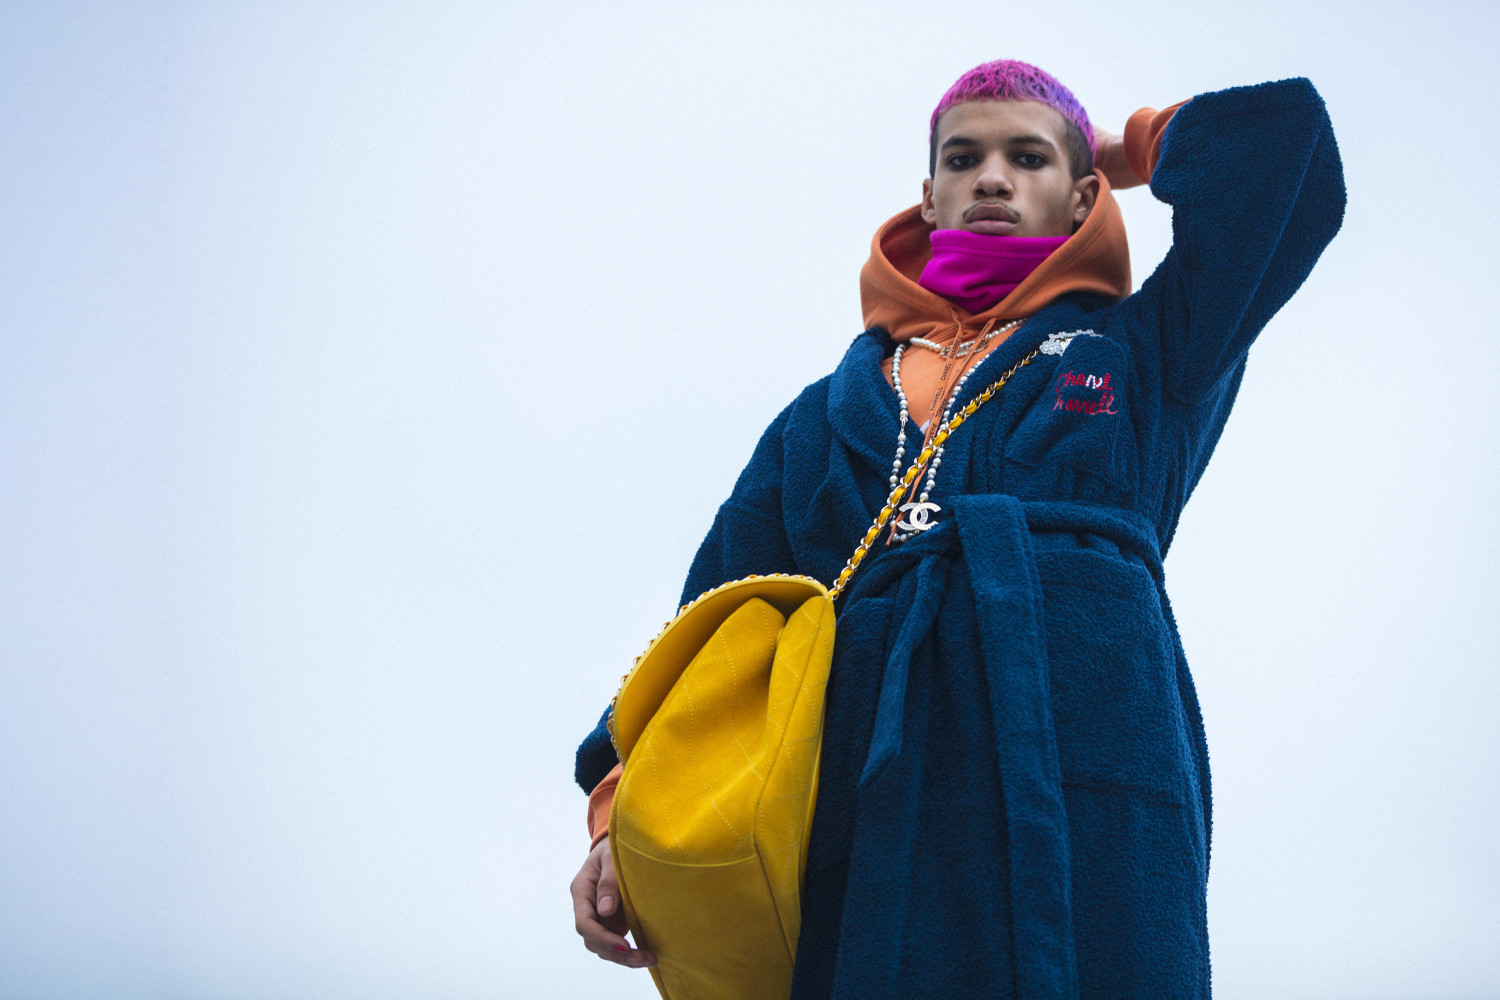 Lilian for the #CHANELPharrell collection